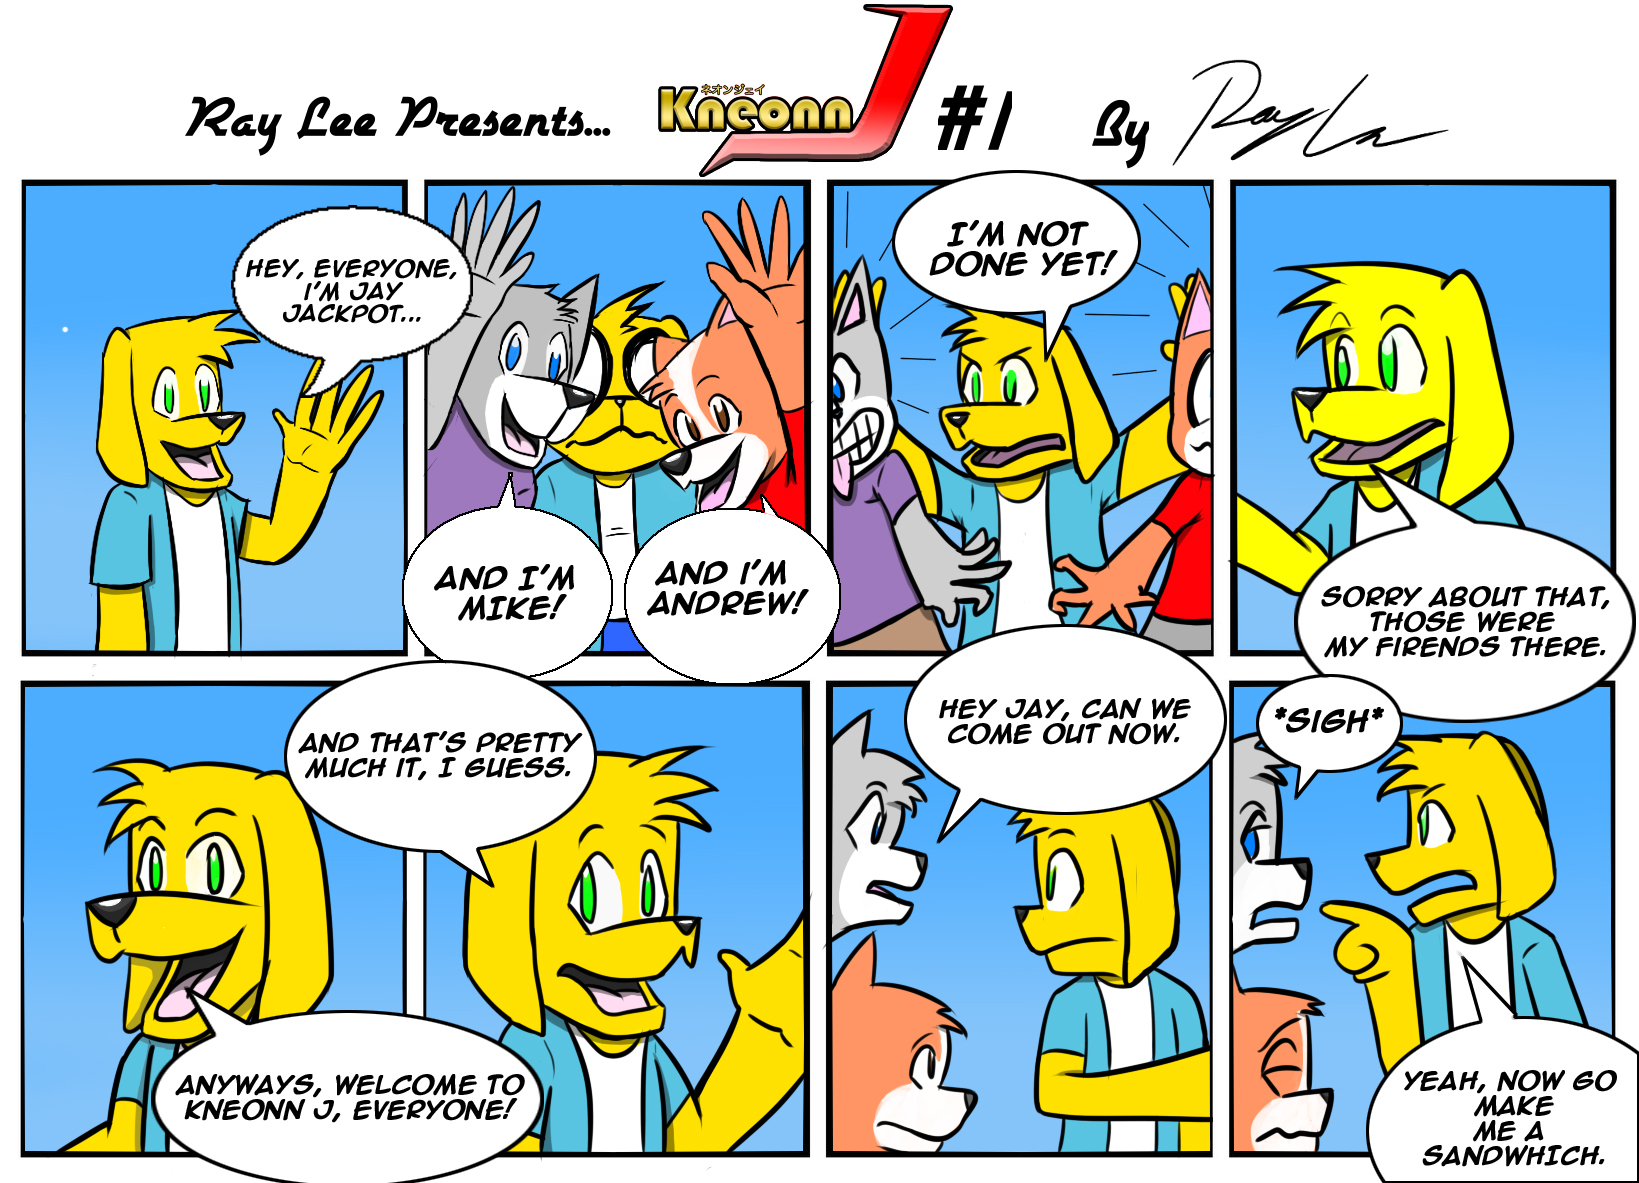 Kneonn J: The Comic #1